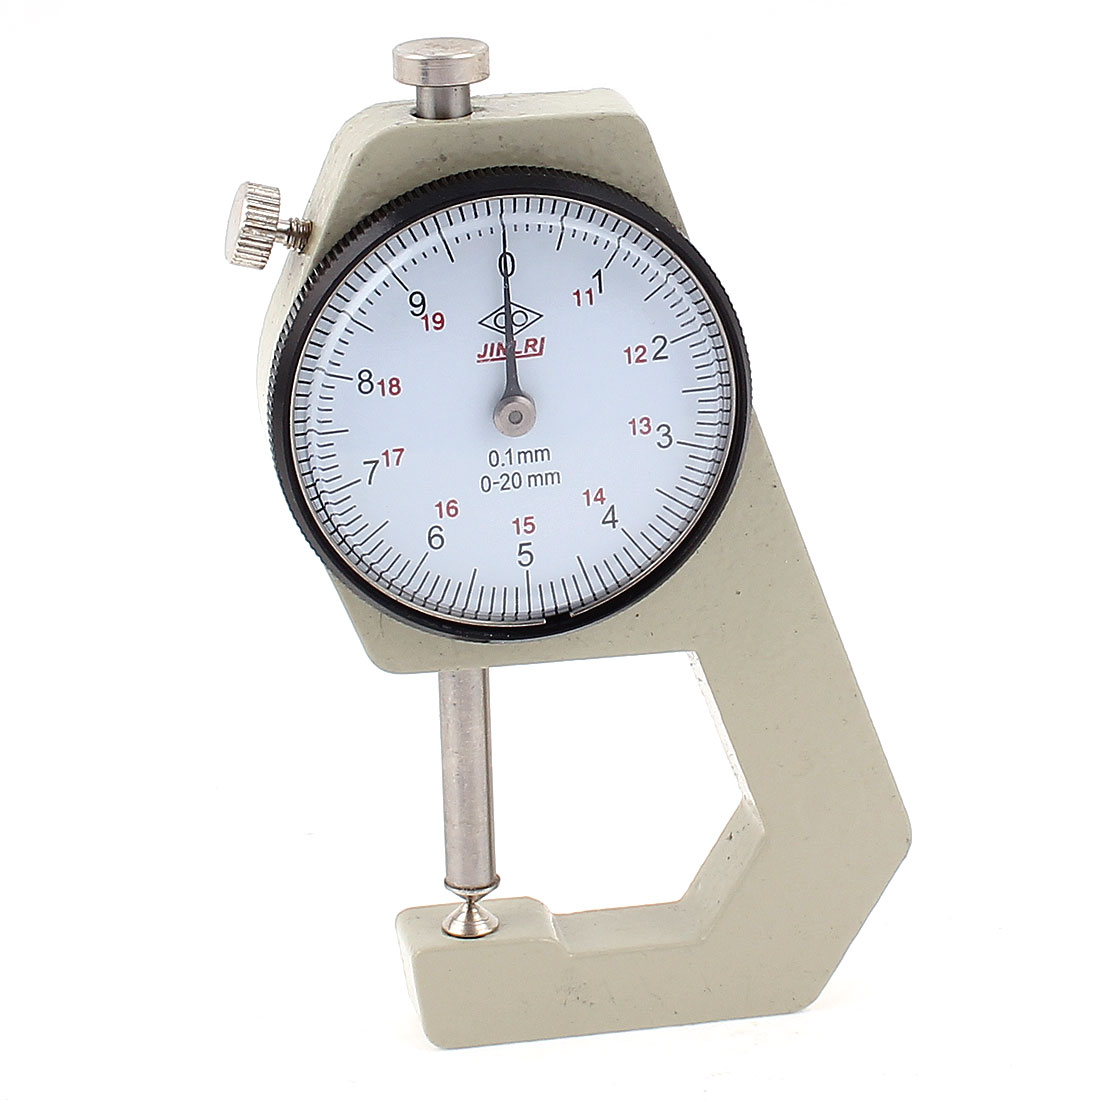 0 to 20mm Dial Indicator Pocket Thickness Gauge Scale Meter Measure Tool